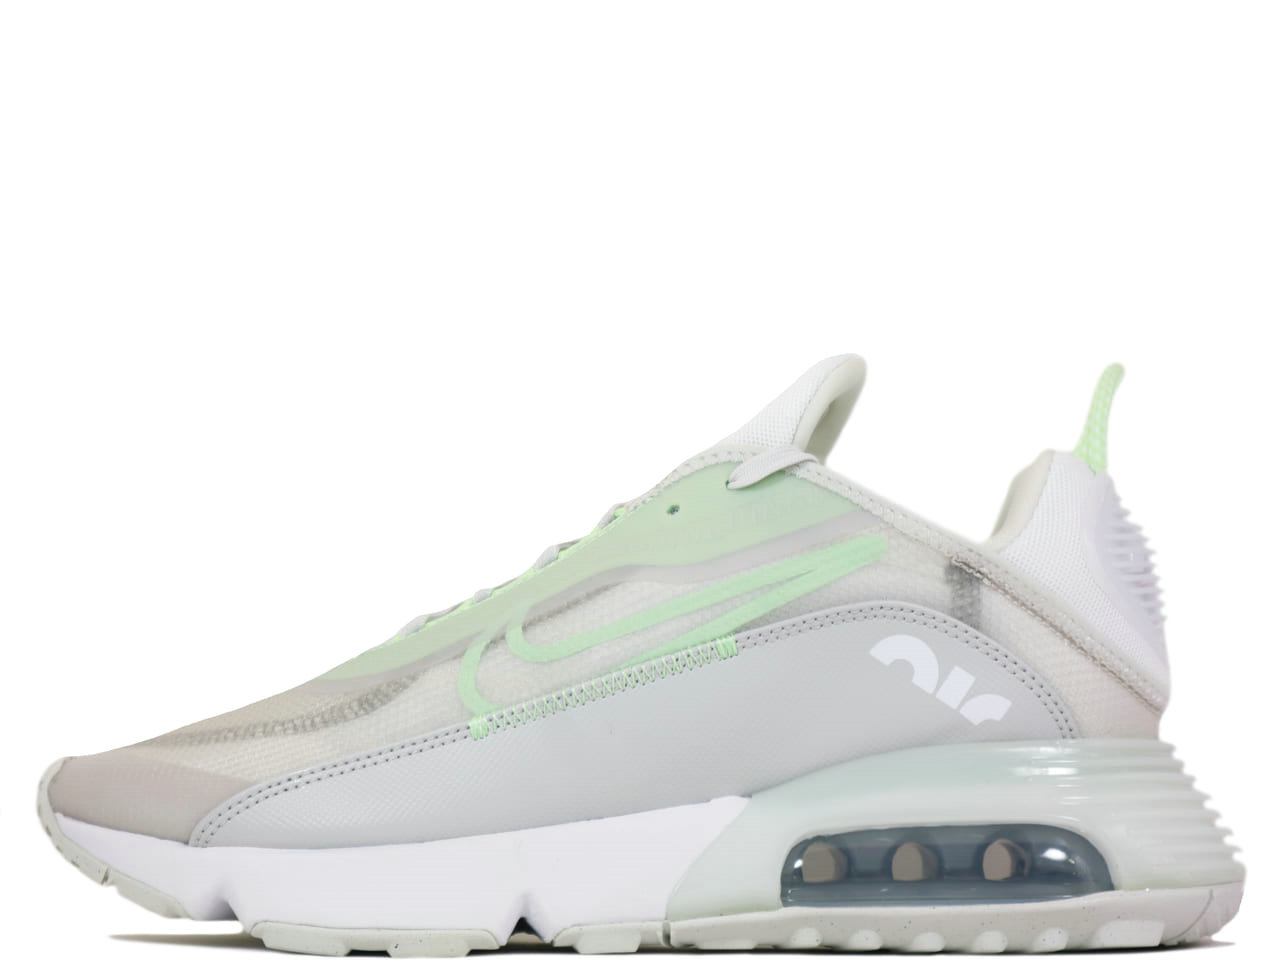 2021 Where To Buy Cheap Womens Nike Air Max 2090 Vast Grey Vapor Green-Flat Pewter-White CT1091-001 - www.wholesaleflyknit.com